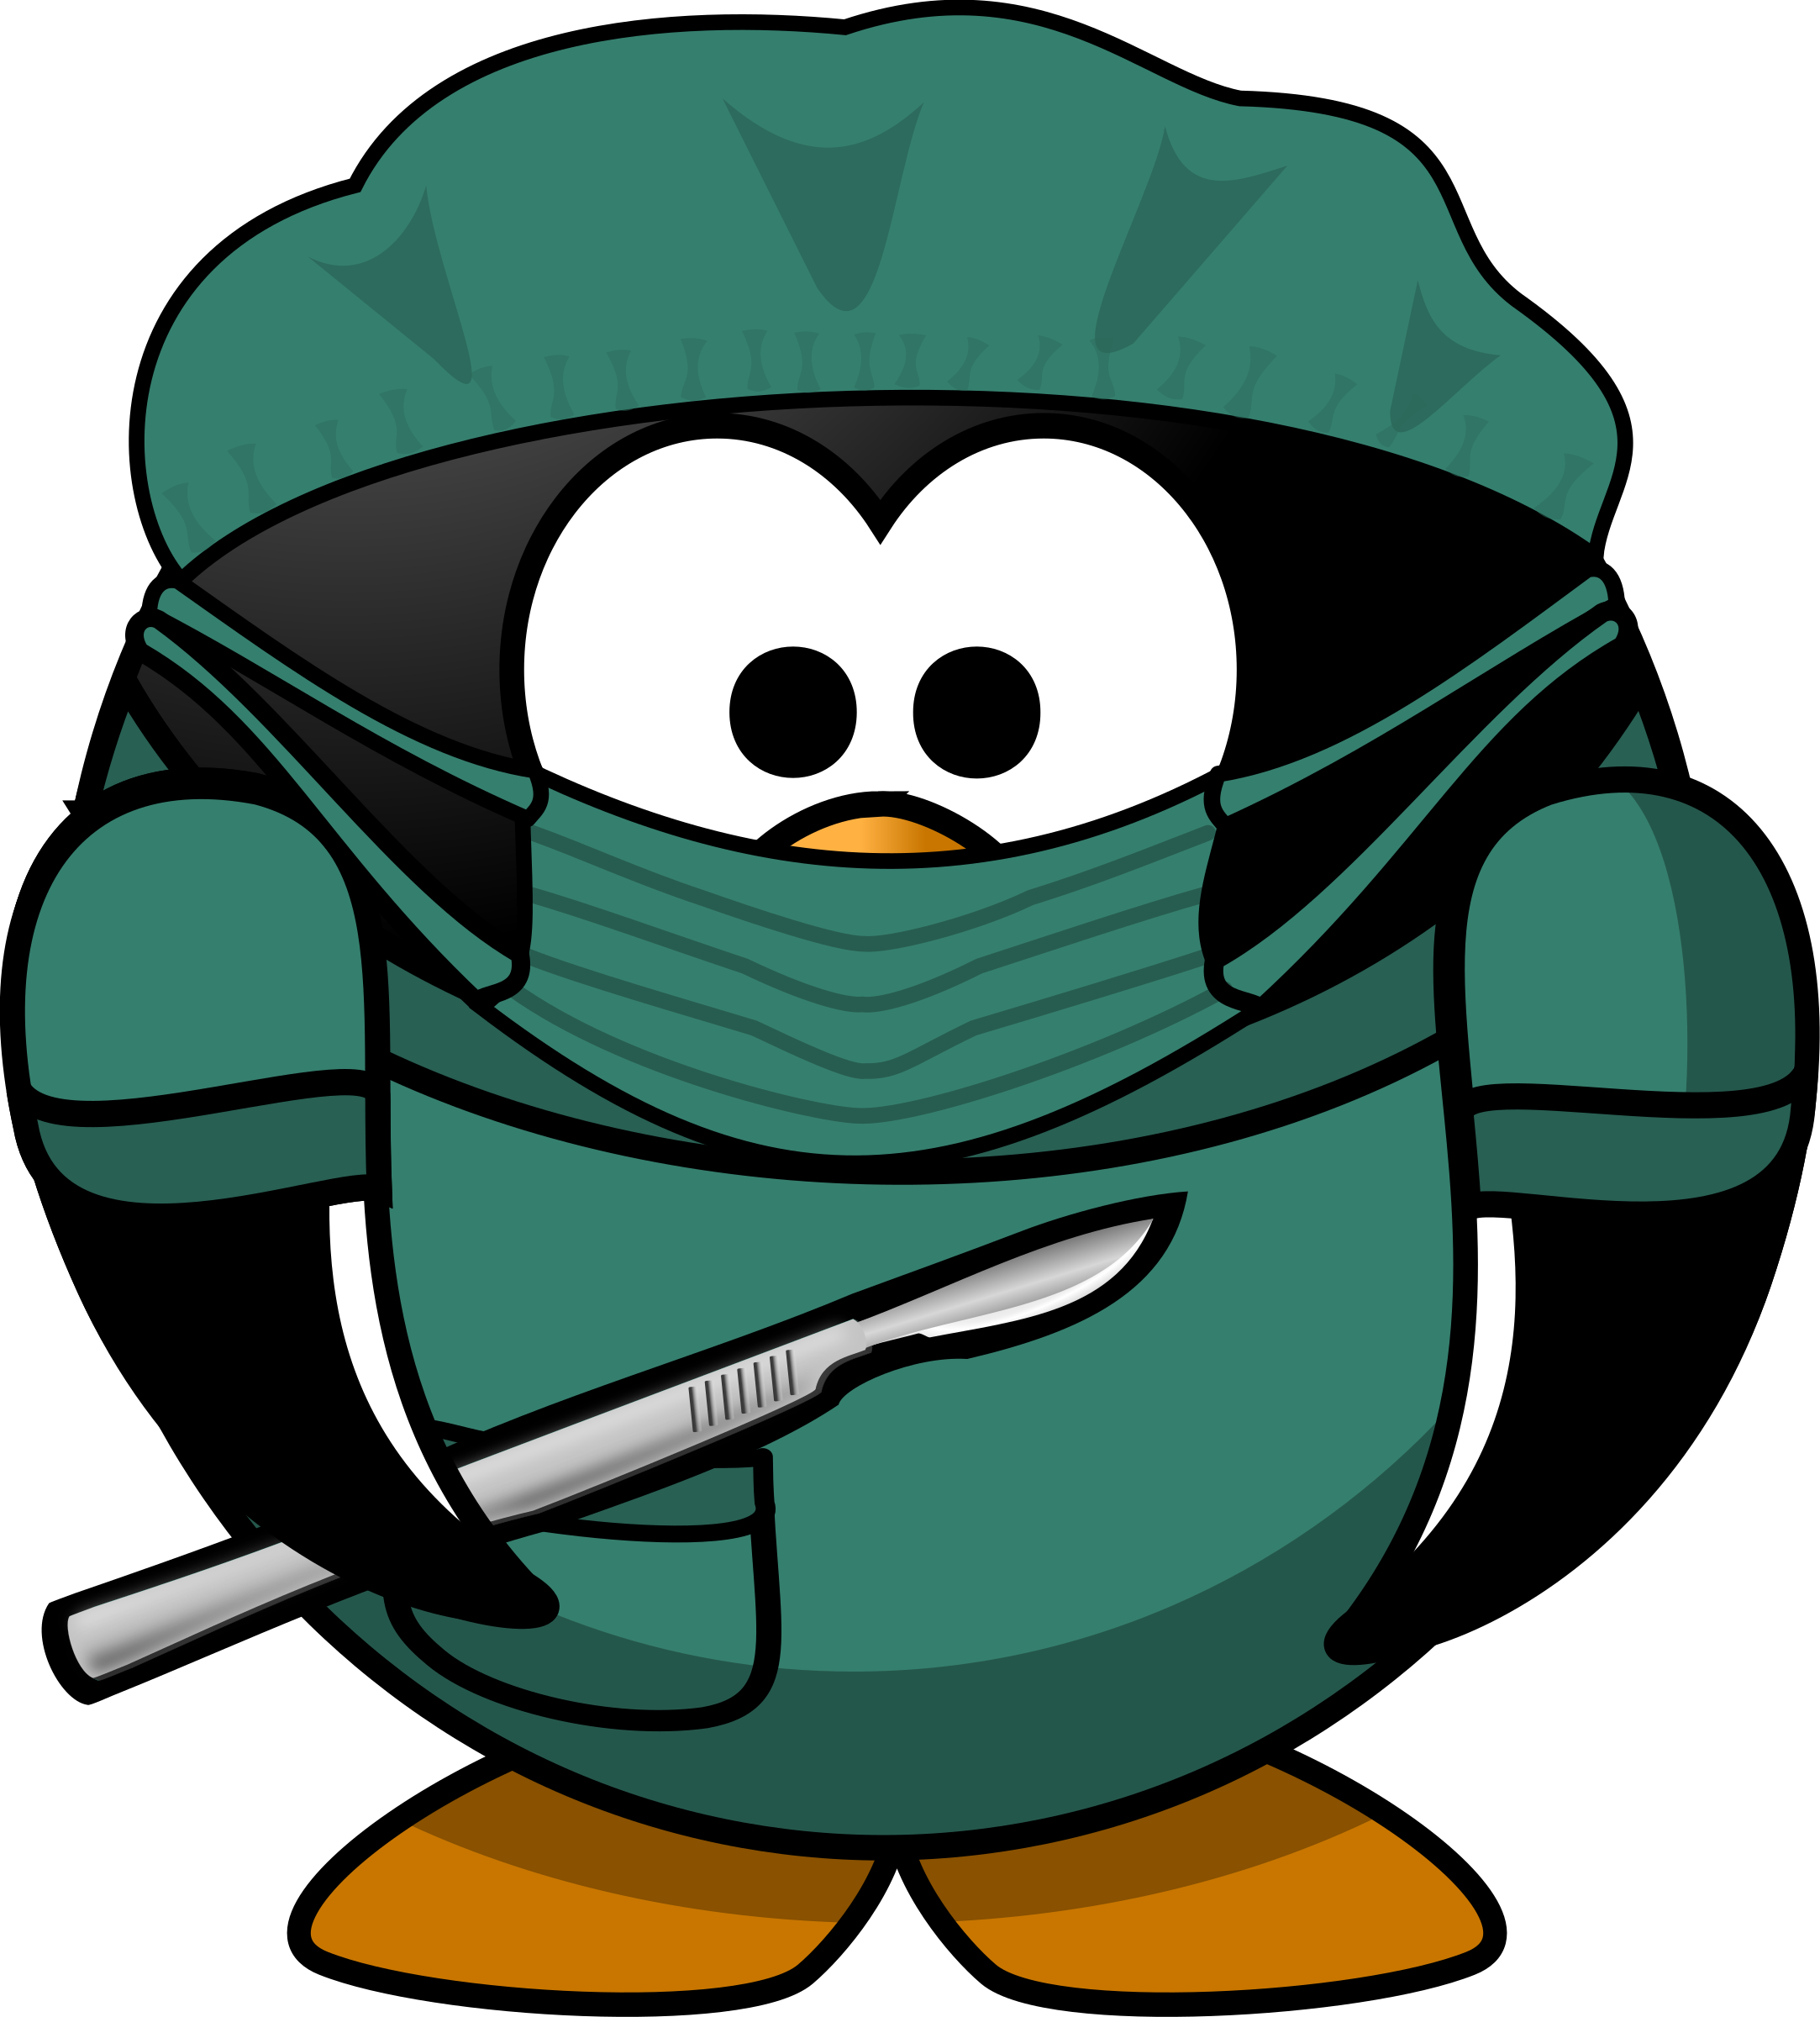 Surgeon clipart 20 free Cliparts | Download images on ...